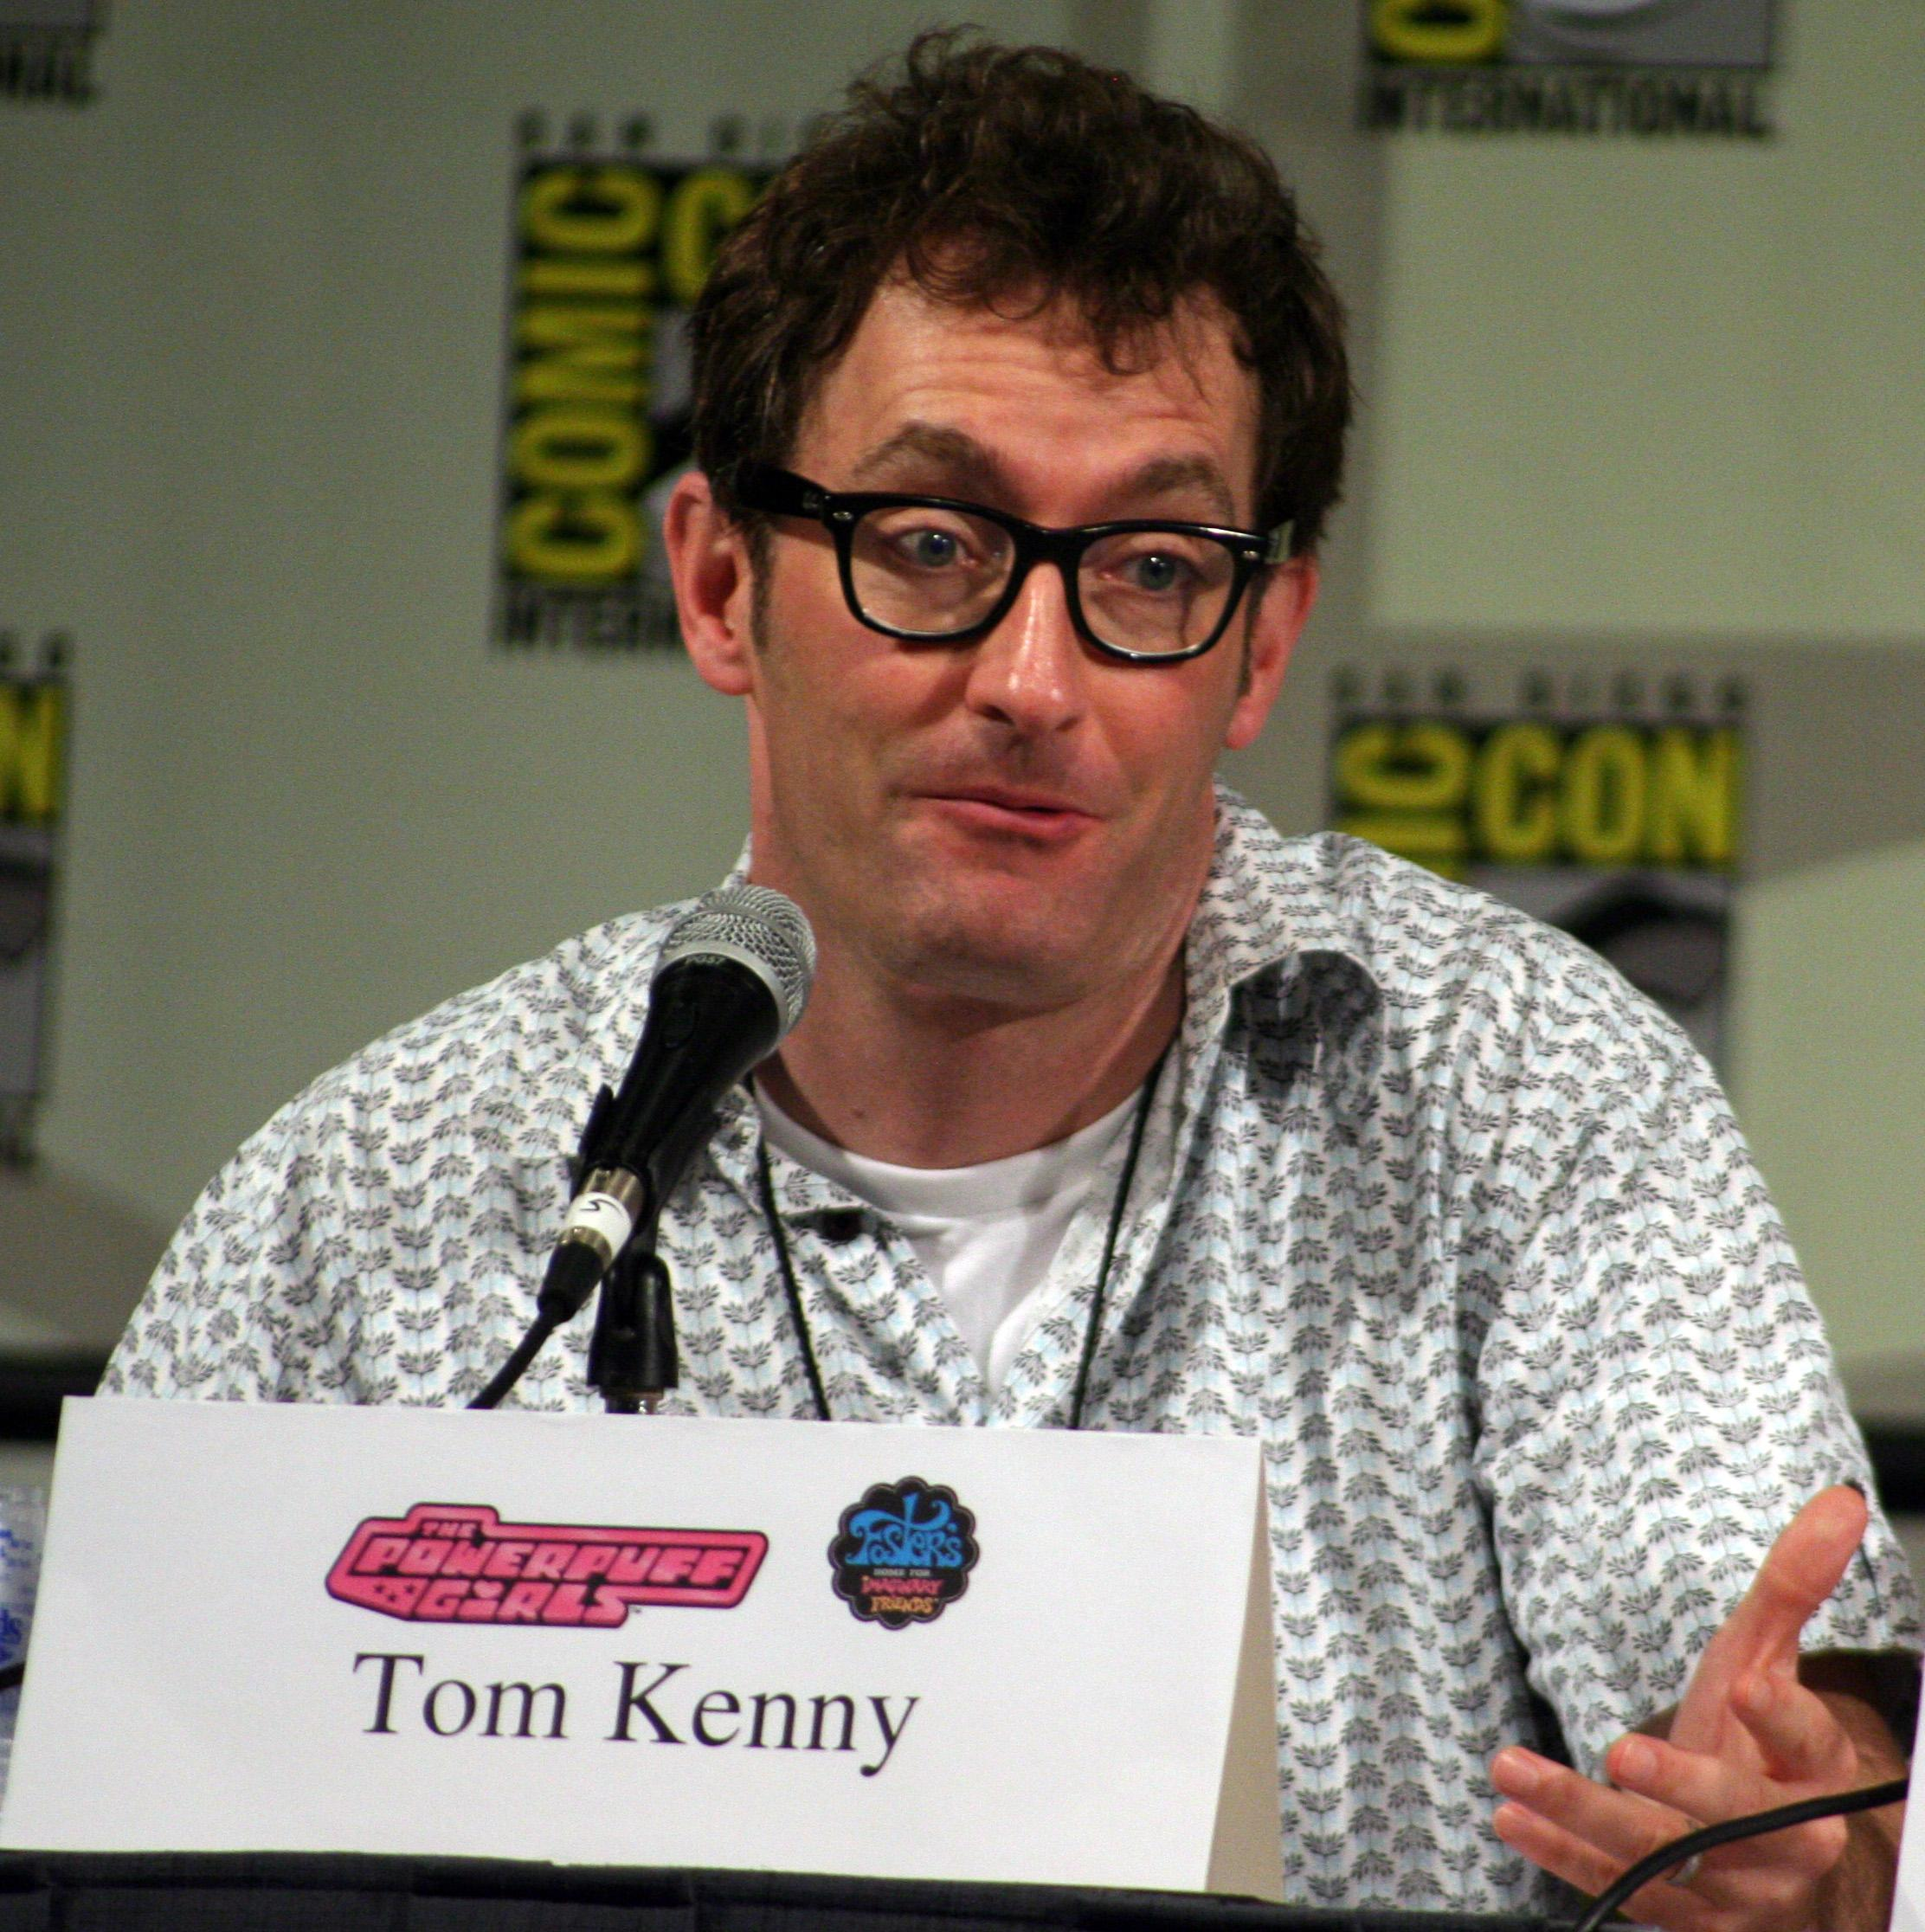 Description Tom Kenny (2008).jpg